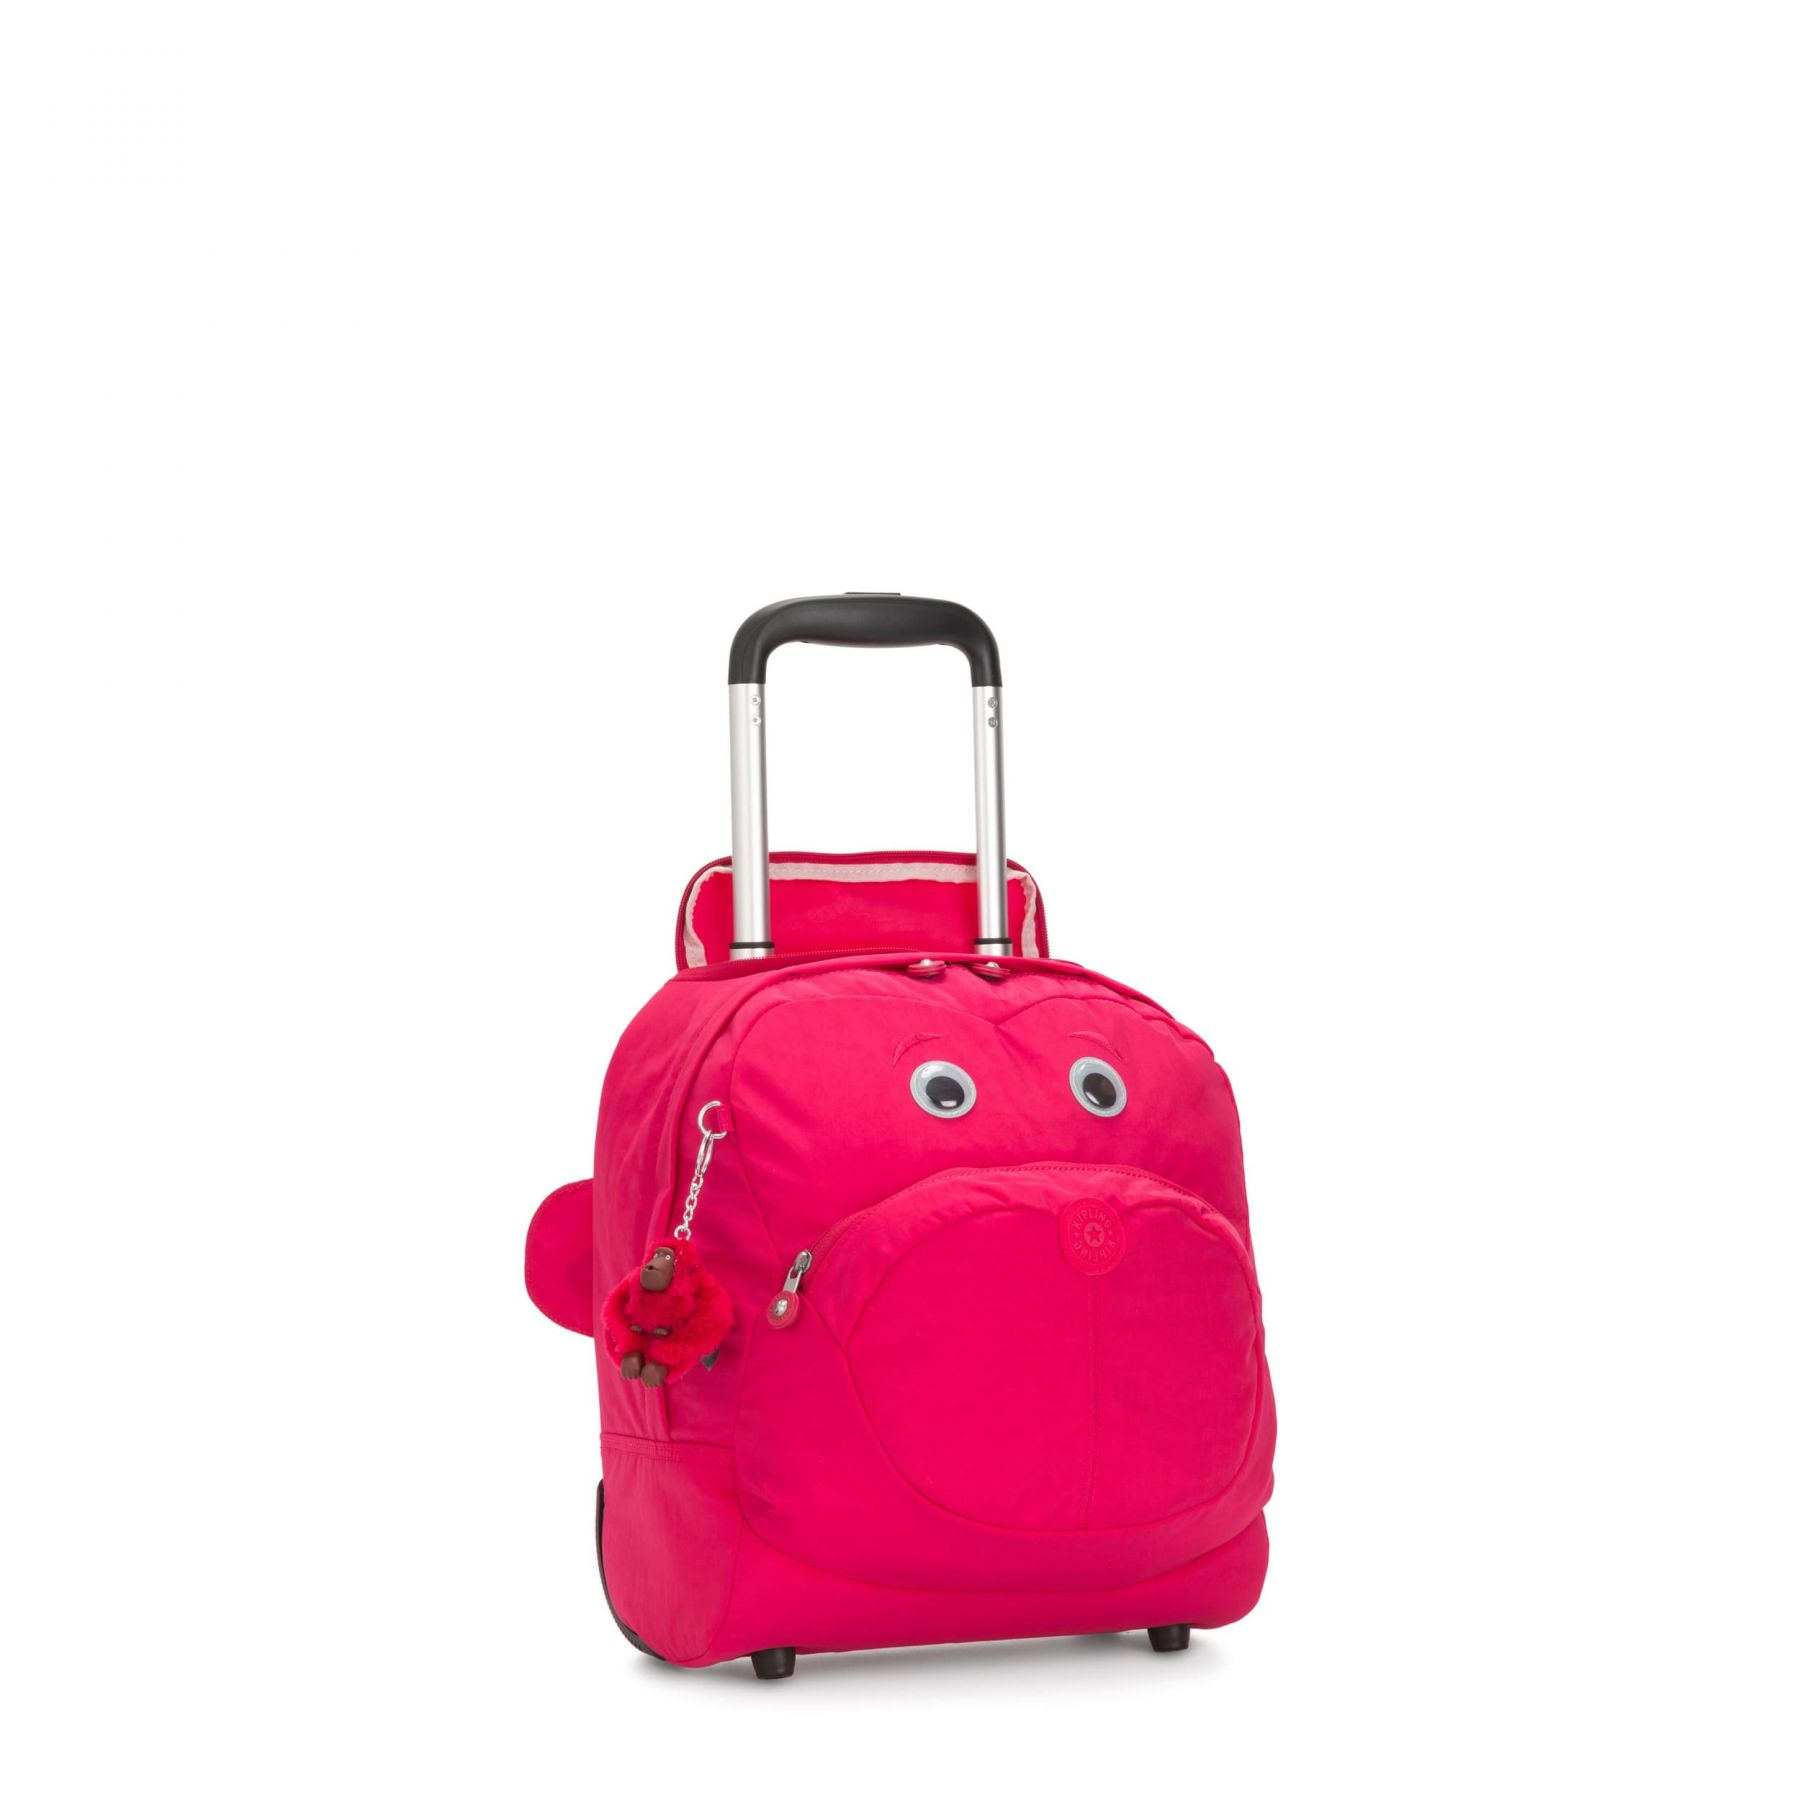 NUSI Latest Luggage by Kipling - view 4